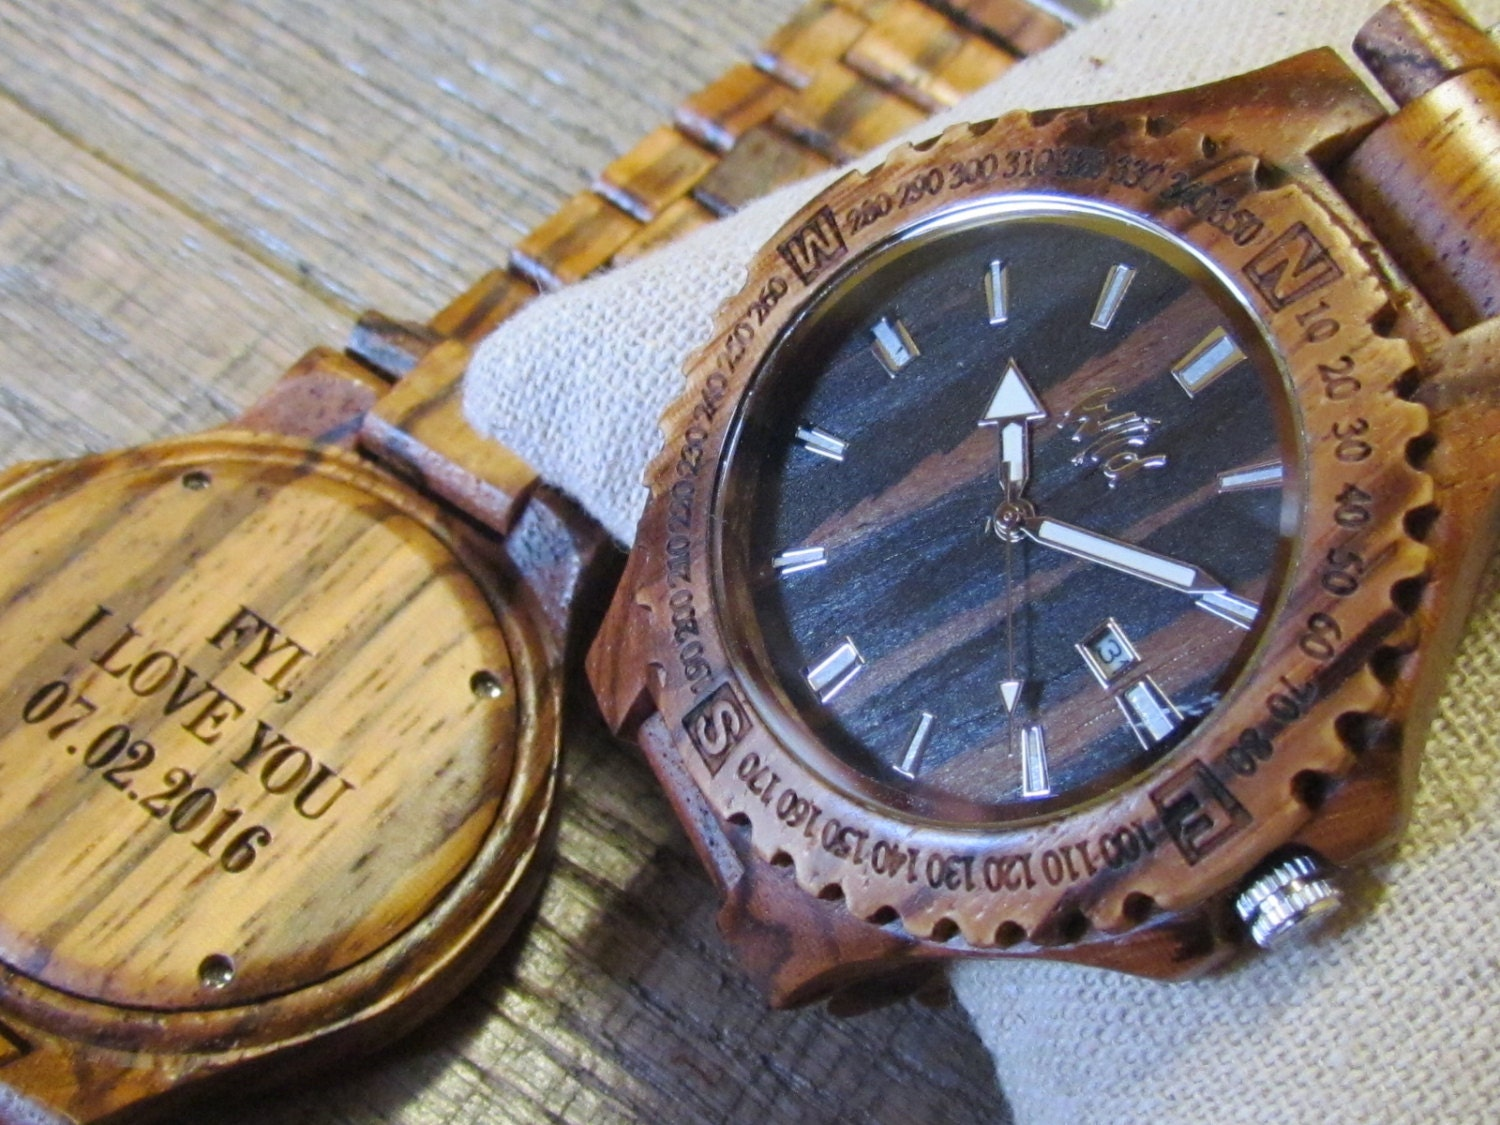 Watch As Wedding Gift: FREE Engraving Wood Watch Personalized Mens Watch Wedding